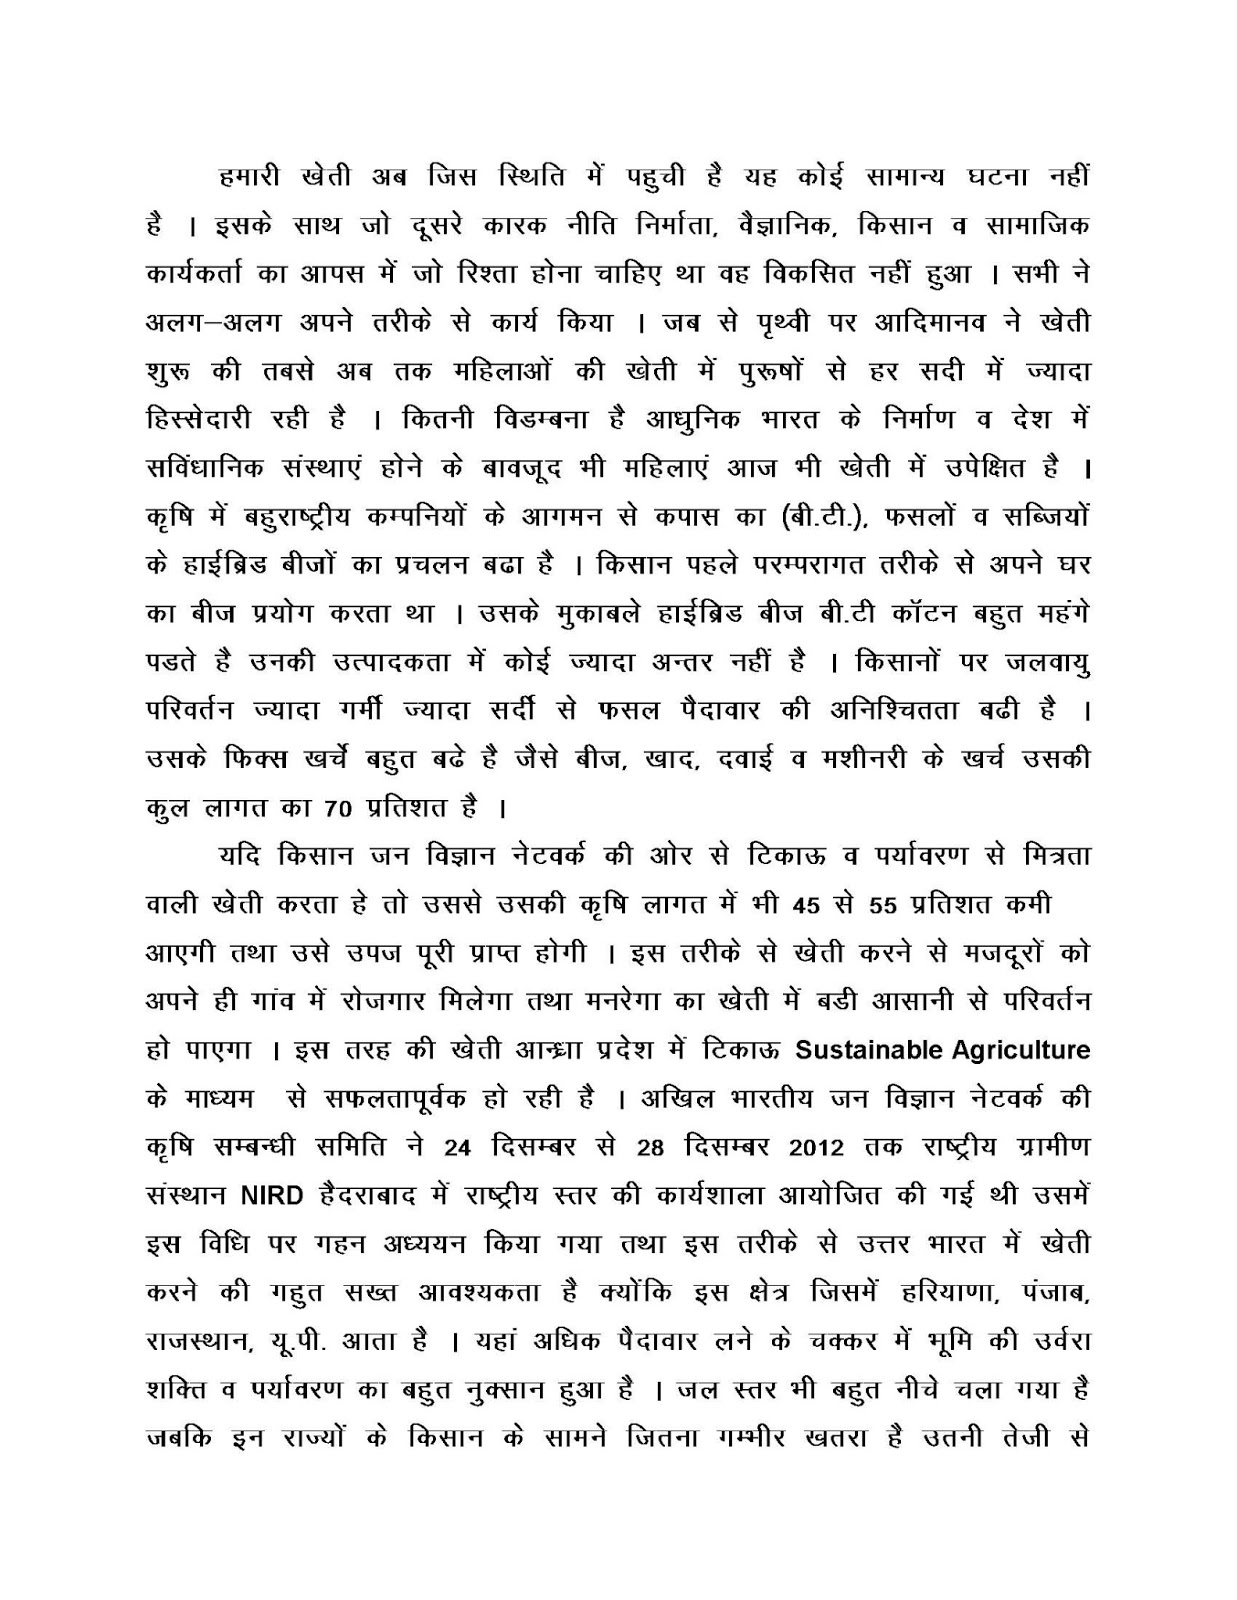 007 Essay Example Hindiworkdr Rajindersingh Page 3 Gender Equality In The Wondrous Workplace Examples Of Inequality Argumentative Outline Full